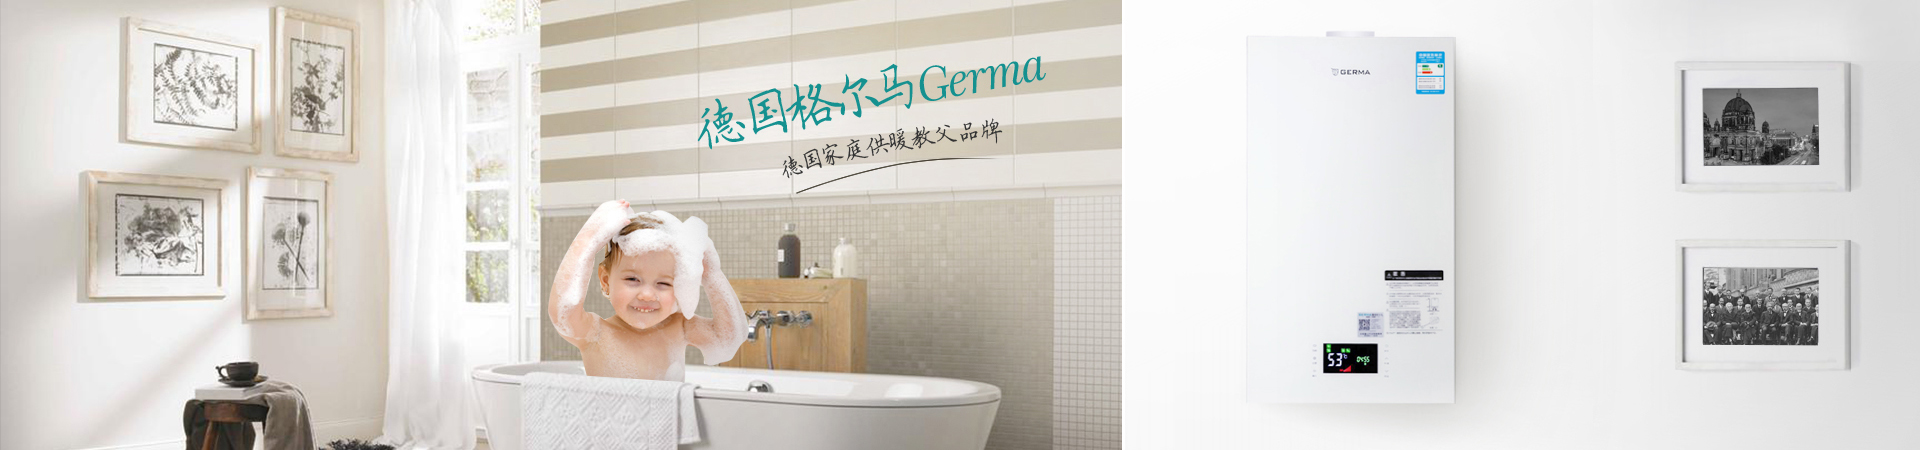 http://www.geerma.com.cn/data/upload/201912/20191219093936_691.jpg